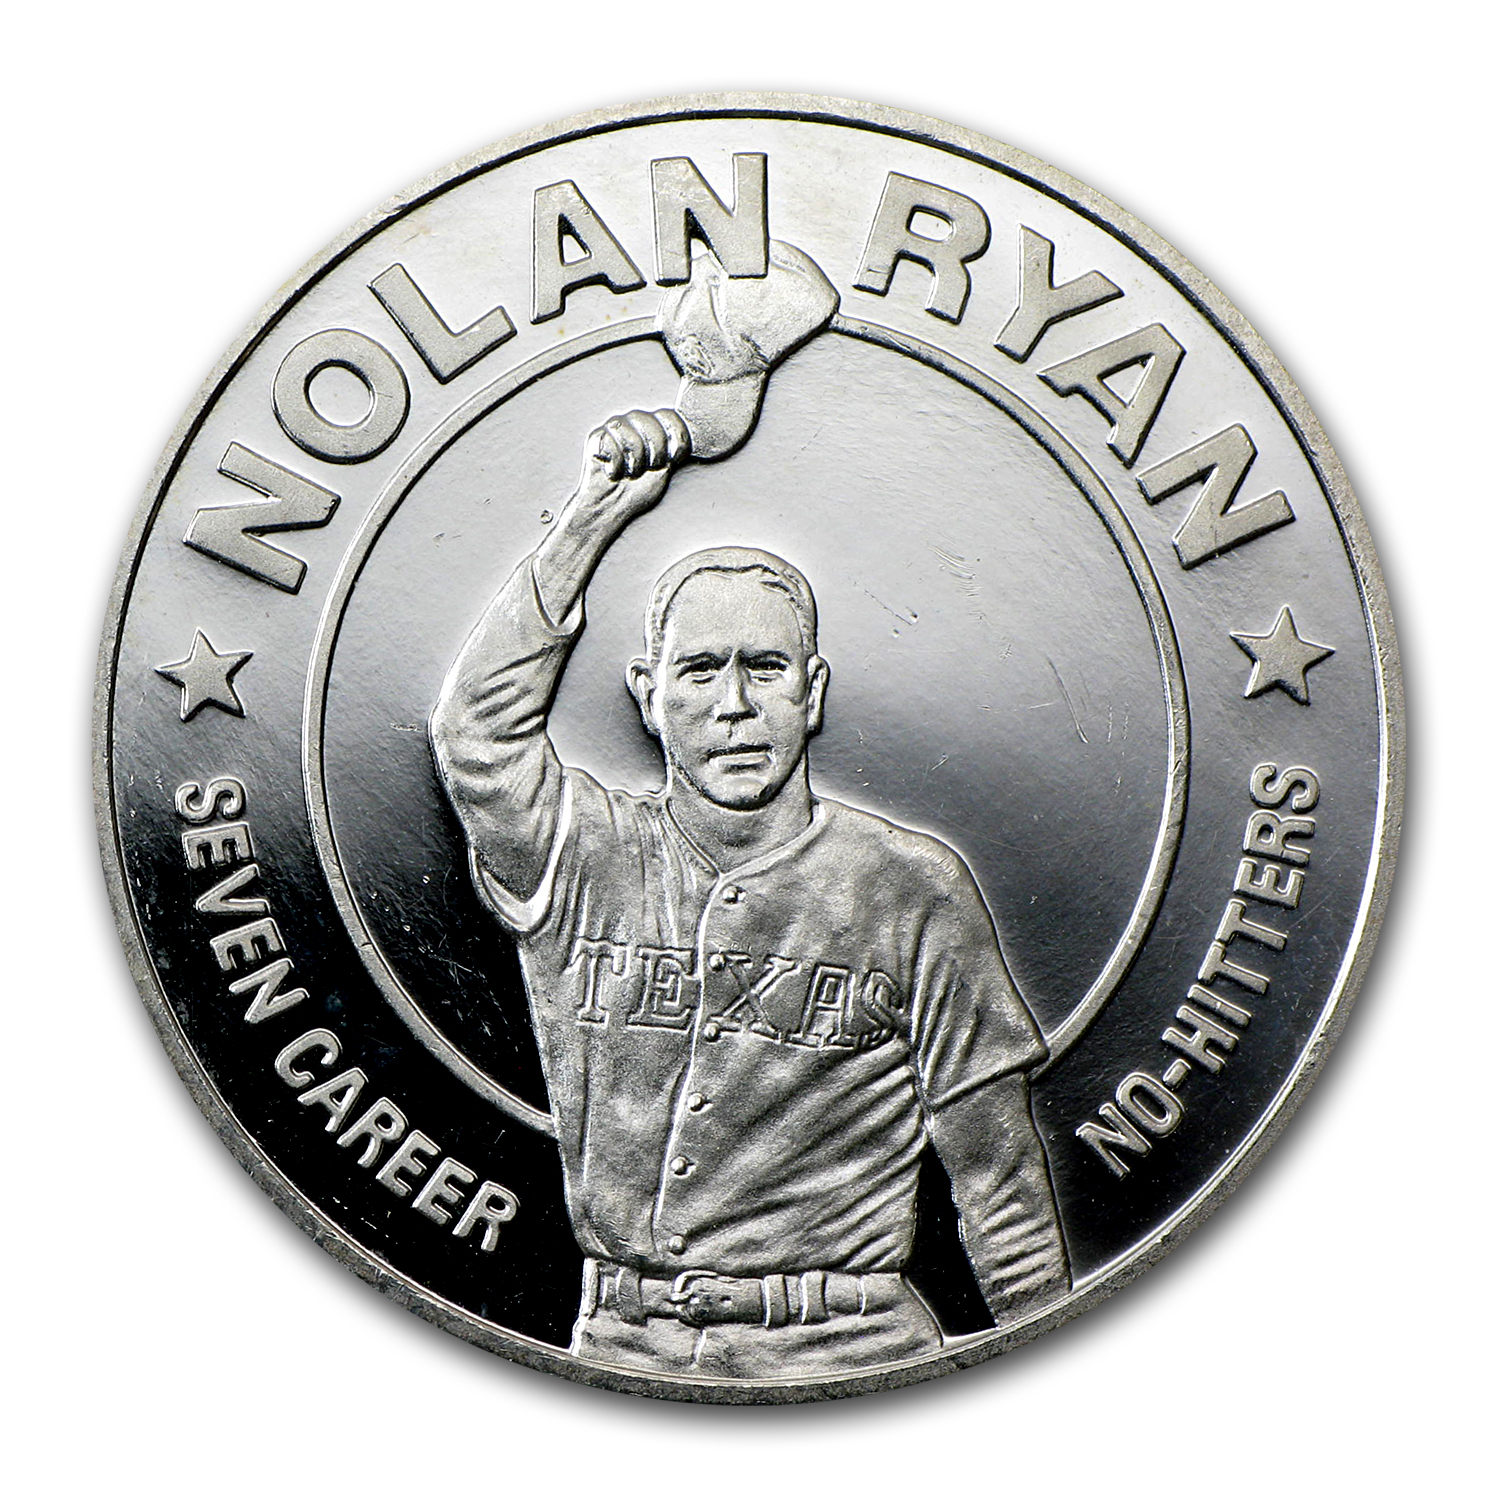 Liberia 1993 1 oz Silver $10 Nolan Ryan Proof